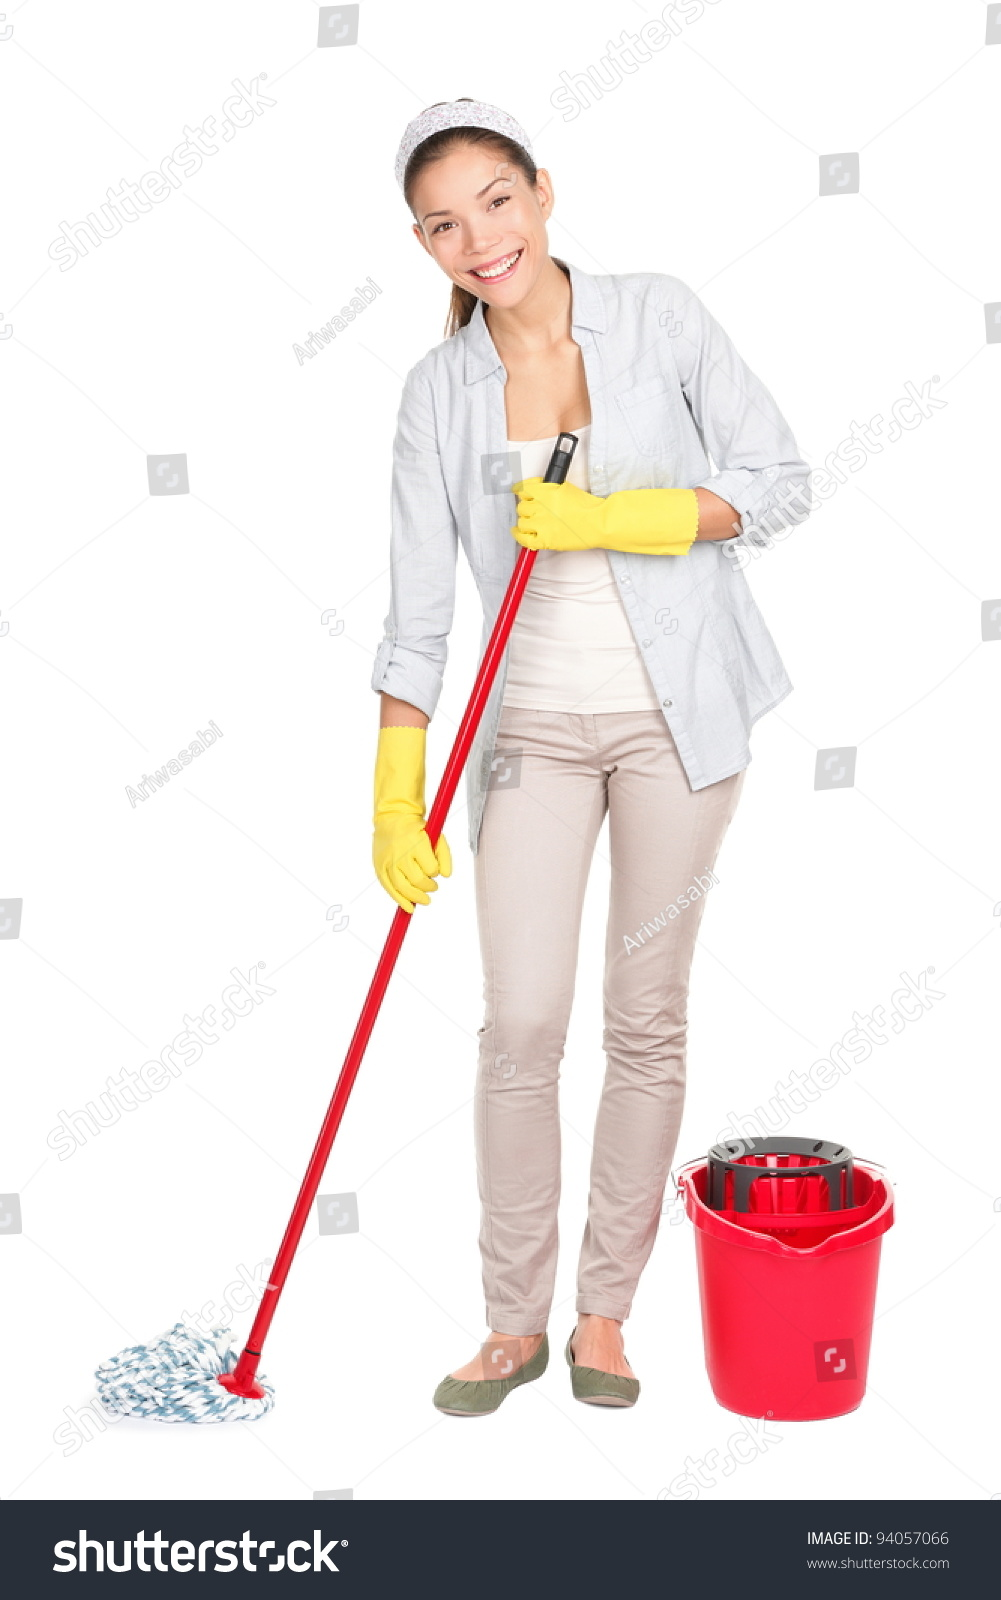 Cleaning Woman Washing Floor Mop Bucket Stock Photo